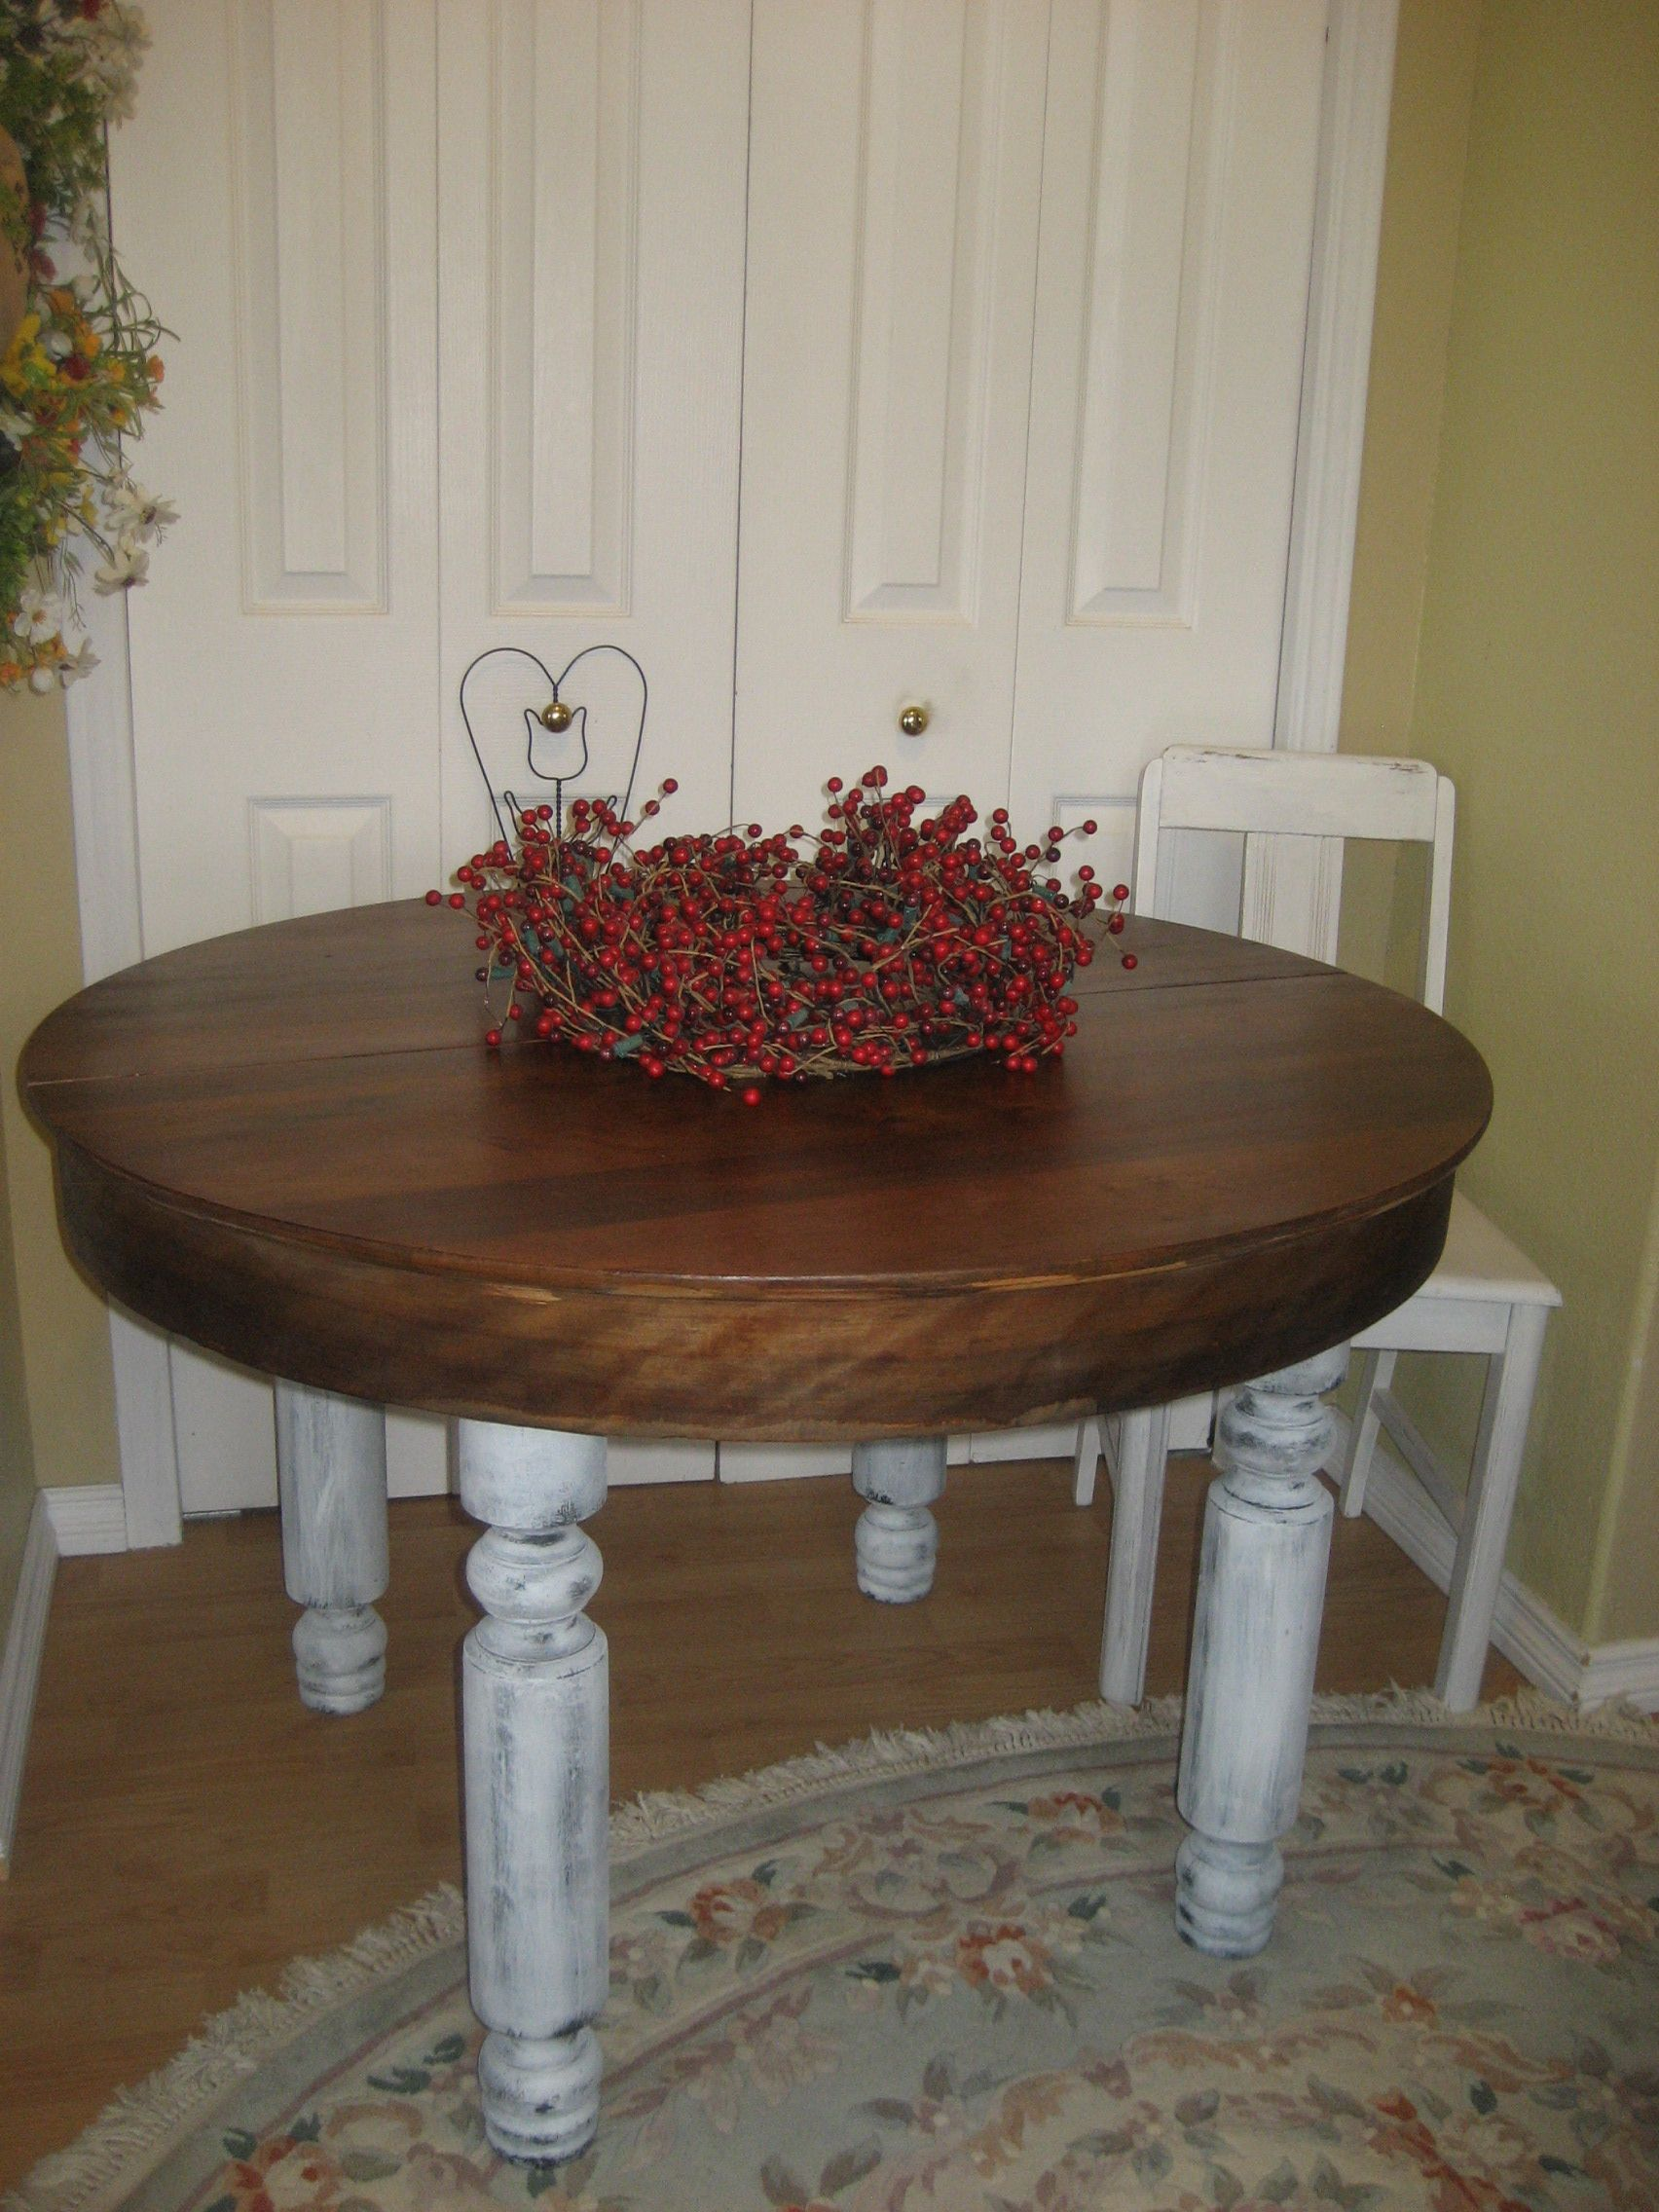 Antique, Reclaimed Upcycled Kitchen Table!sweet!  Bound